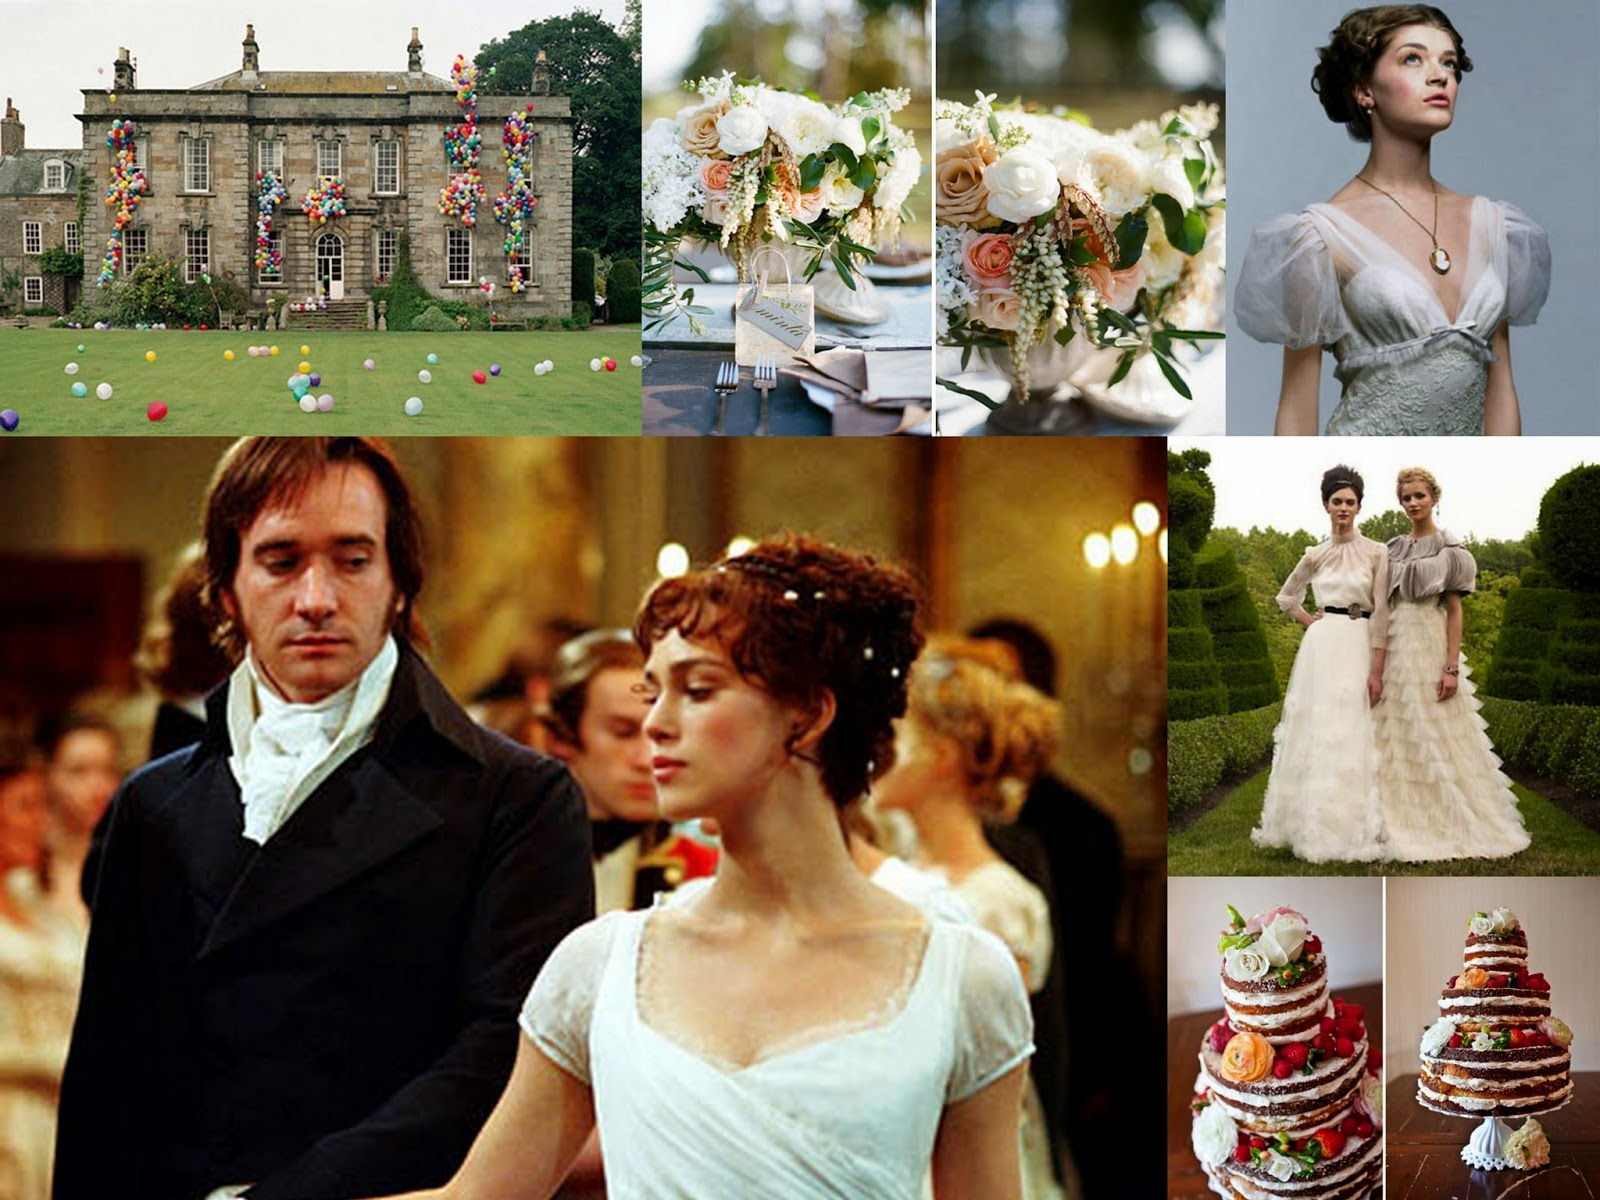 How does Jane Austen present the themes of love and marriage in Pride and Prejudice?